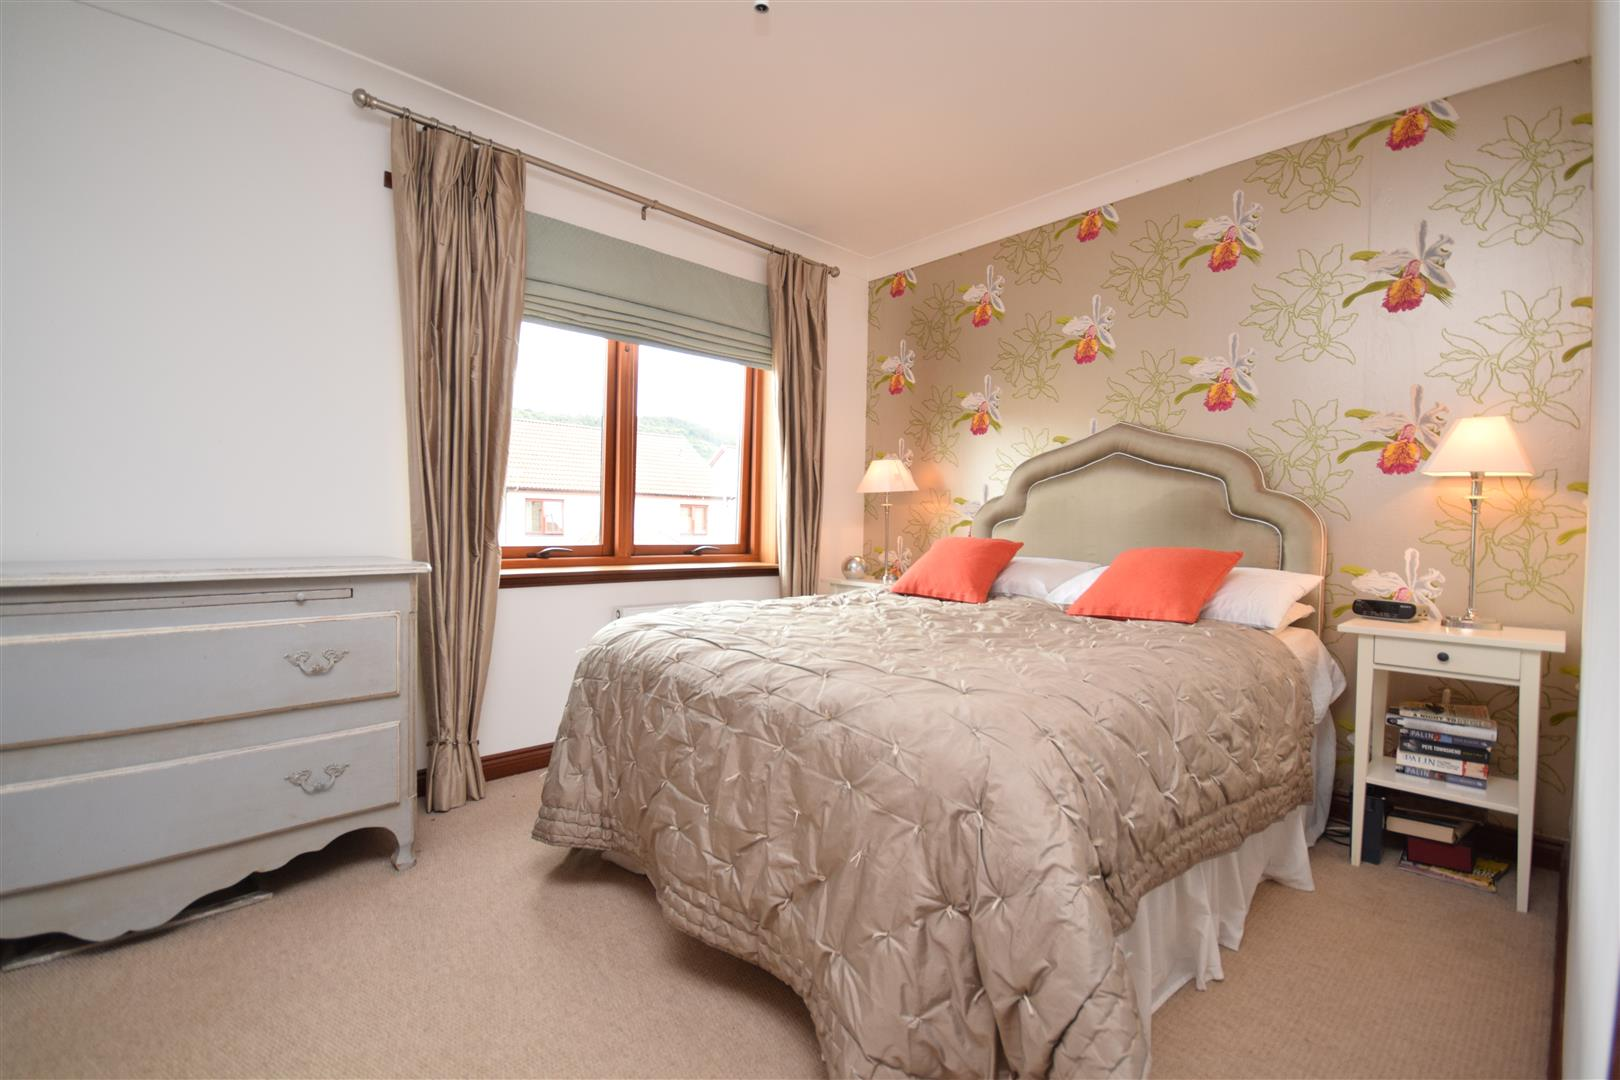 16, Provost Mains, Abernethy, Perthshire, PH2 9GE, UK